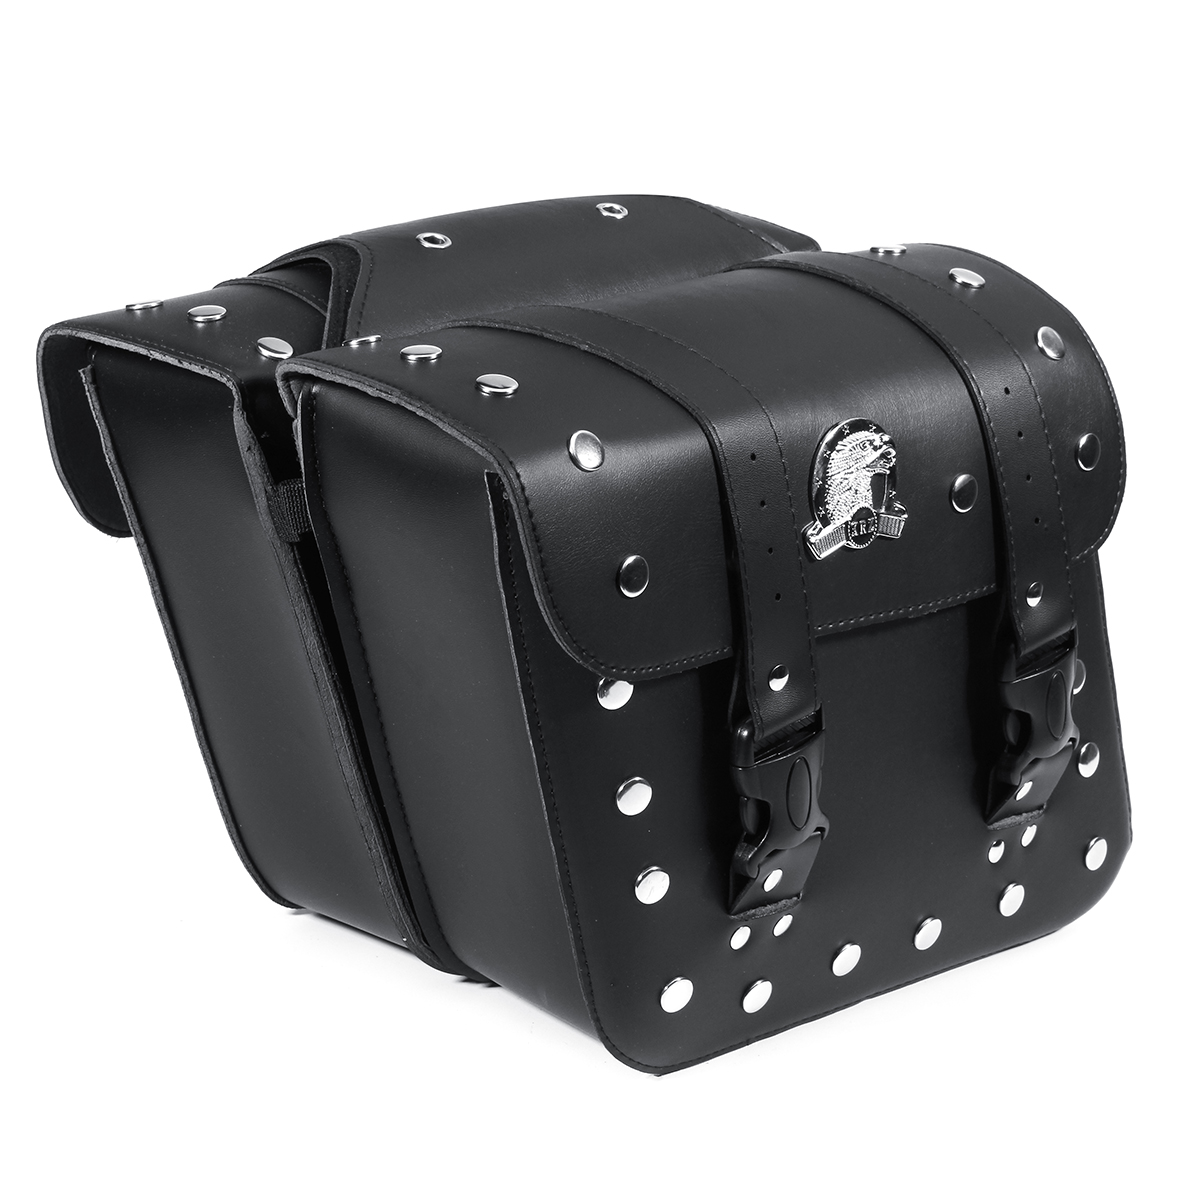 d403c0626497 Motorcycle PU Leather Side Bag Saddlebags For Harley Sportster XL883  XL1200. a0e74428-9d81-4c9d-9566-eaf5ef5d51bb.JPG   a29ba5a2-cd26-45eb-b36f-be89341a4511.